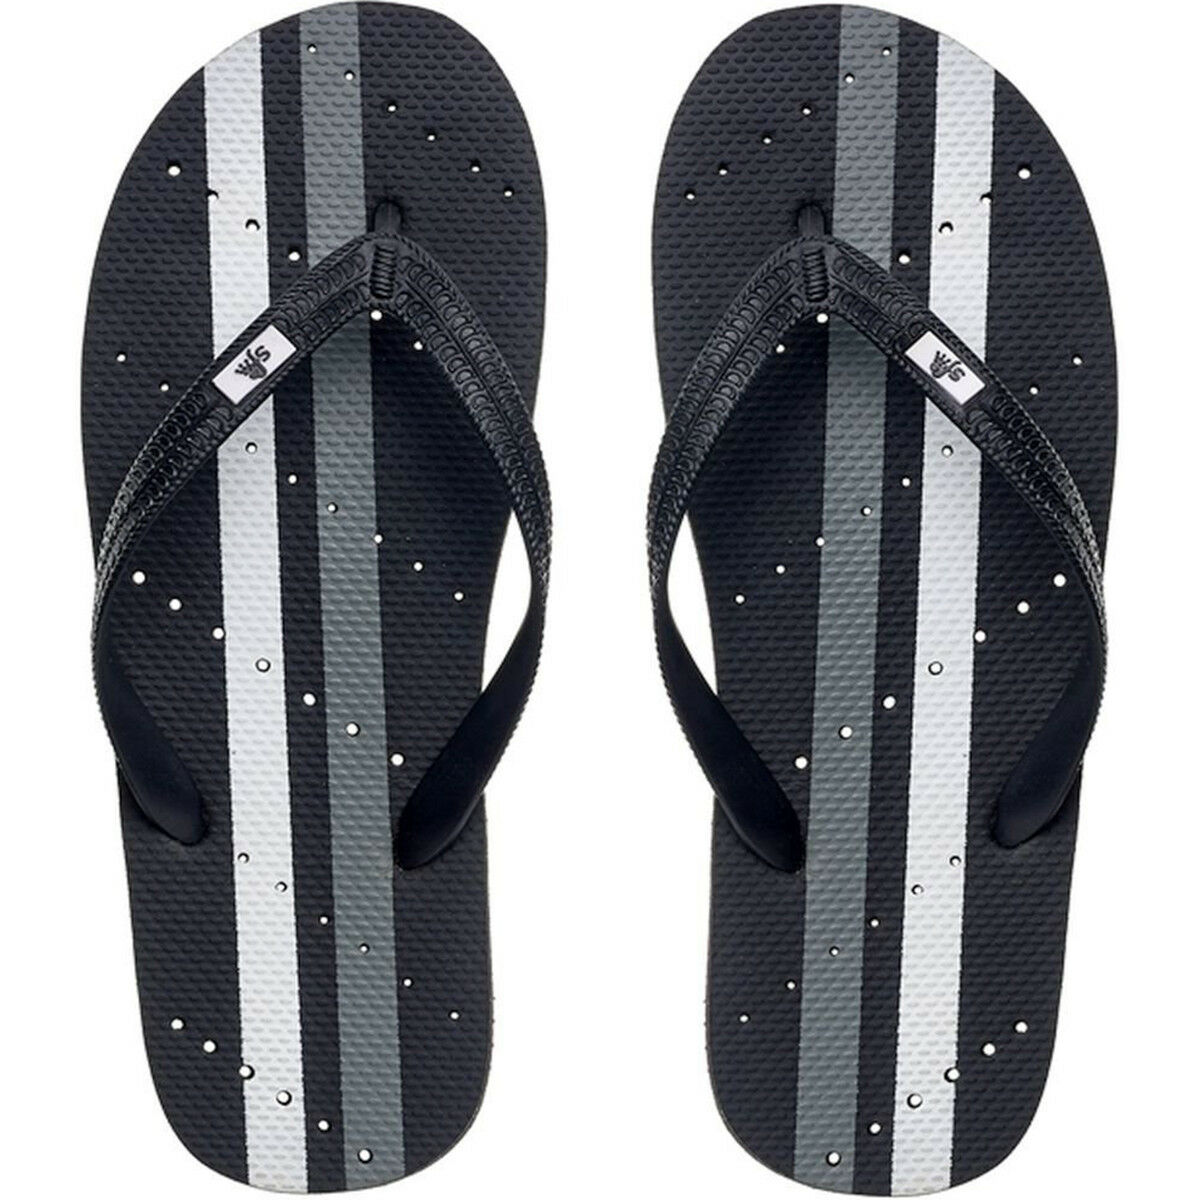 Showaflops Sandals Antimicrobial Shower and Water Sandals Showaflops - Black/Gray/White Stripe b228d6